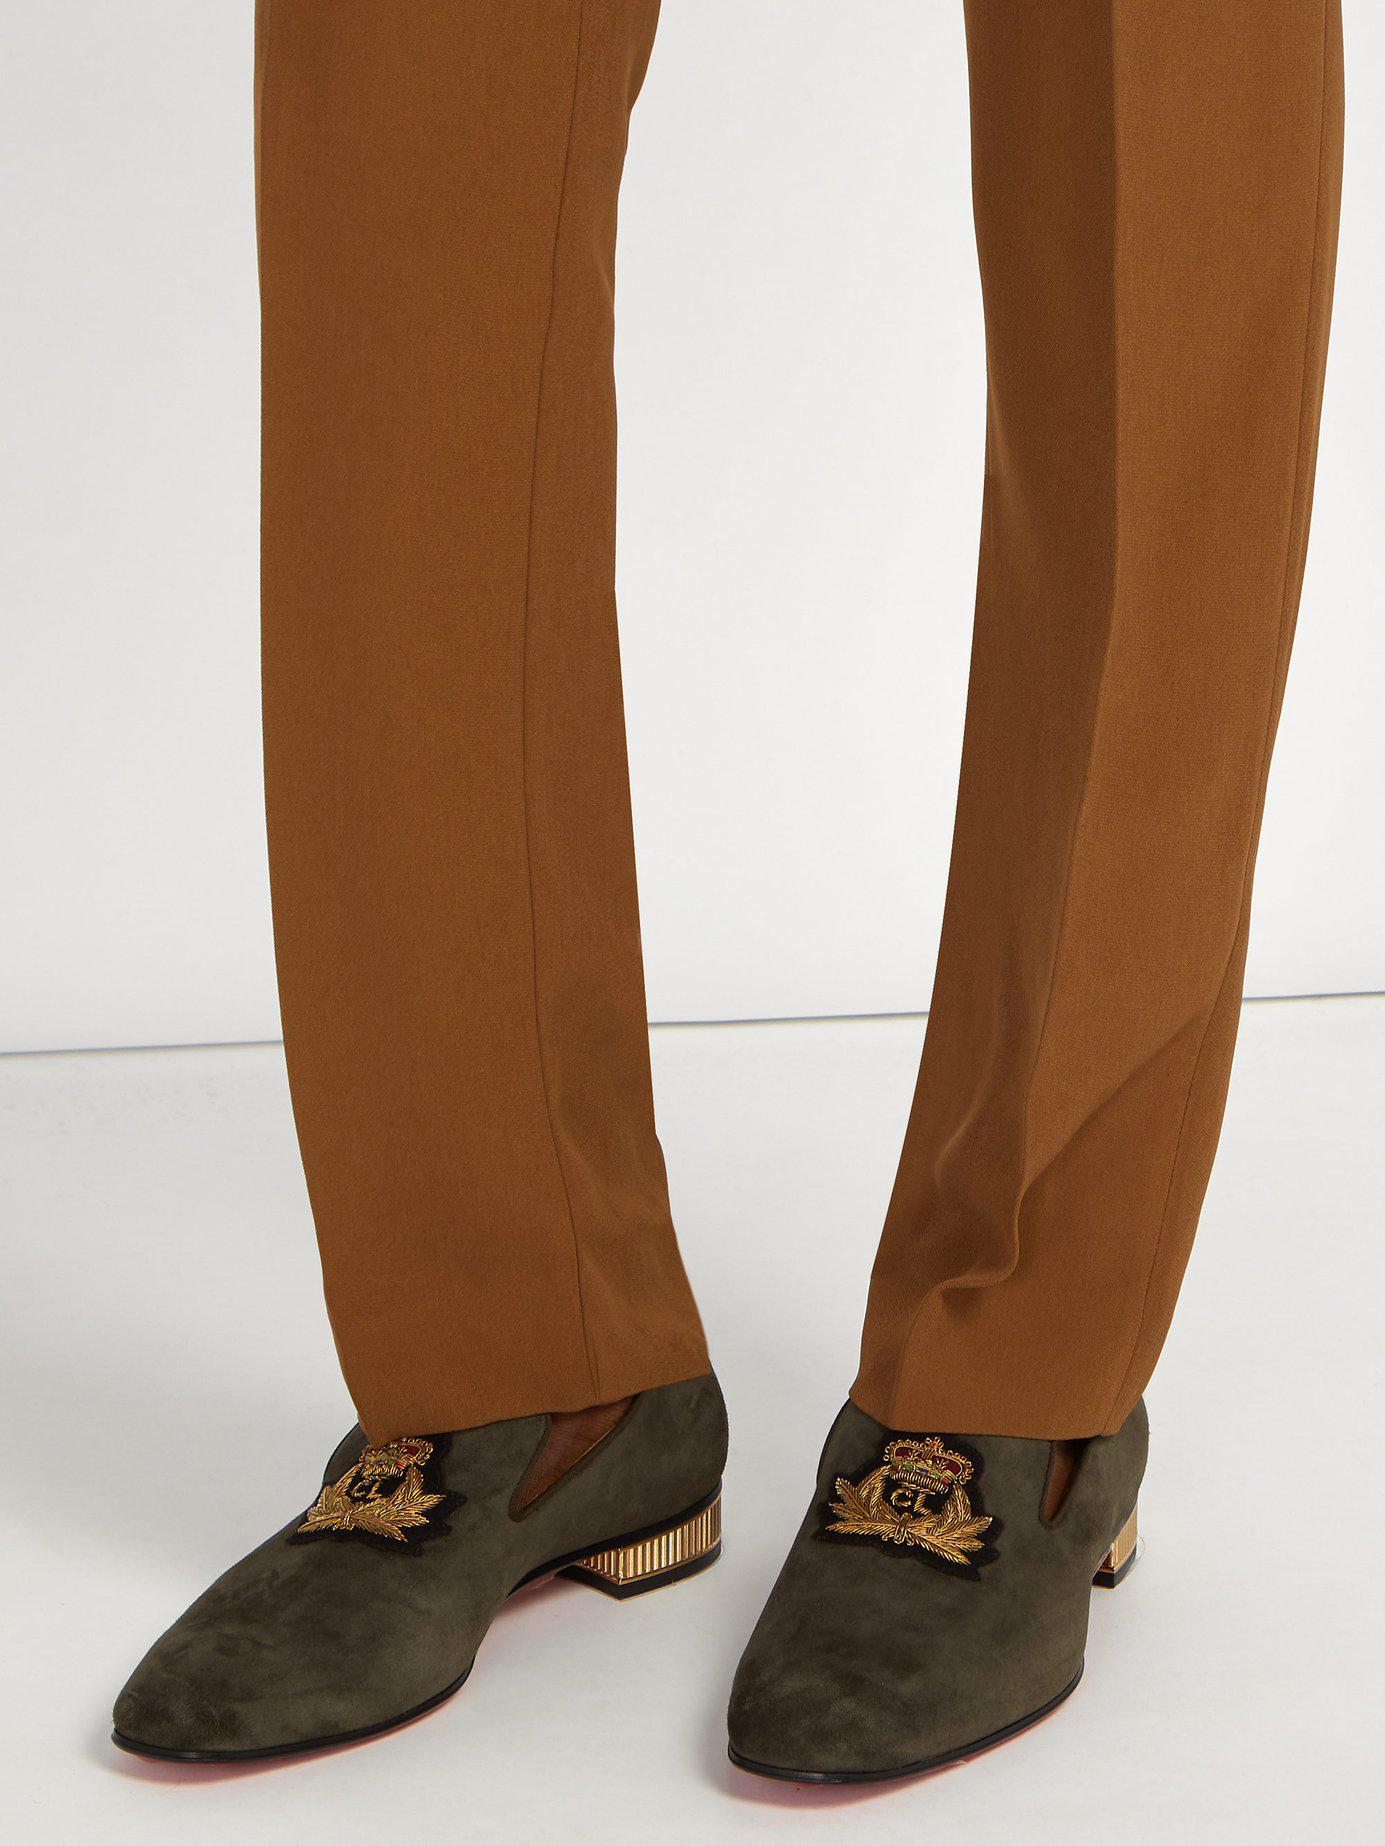 65e9cbff633b Lyst - Christian Louboutin Captain Colonnaki Crest Suede Loafers in Brown  for Men